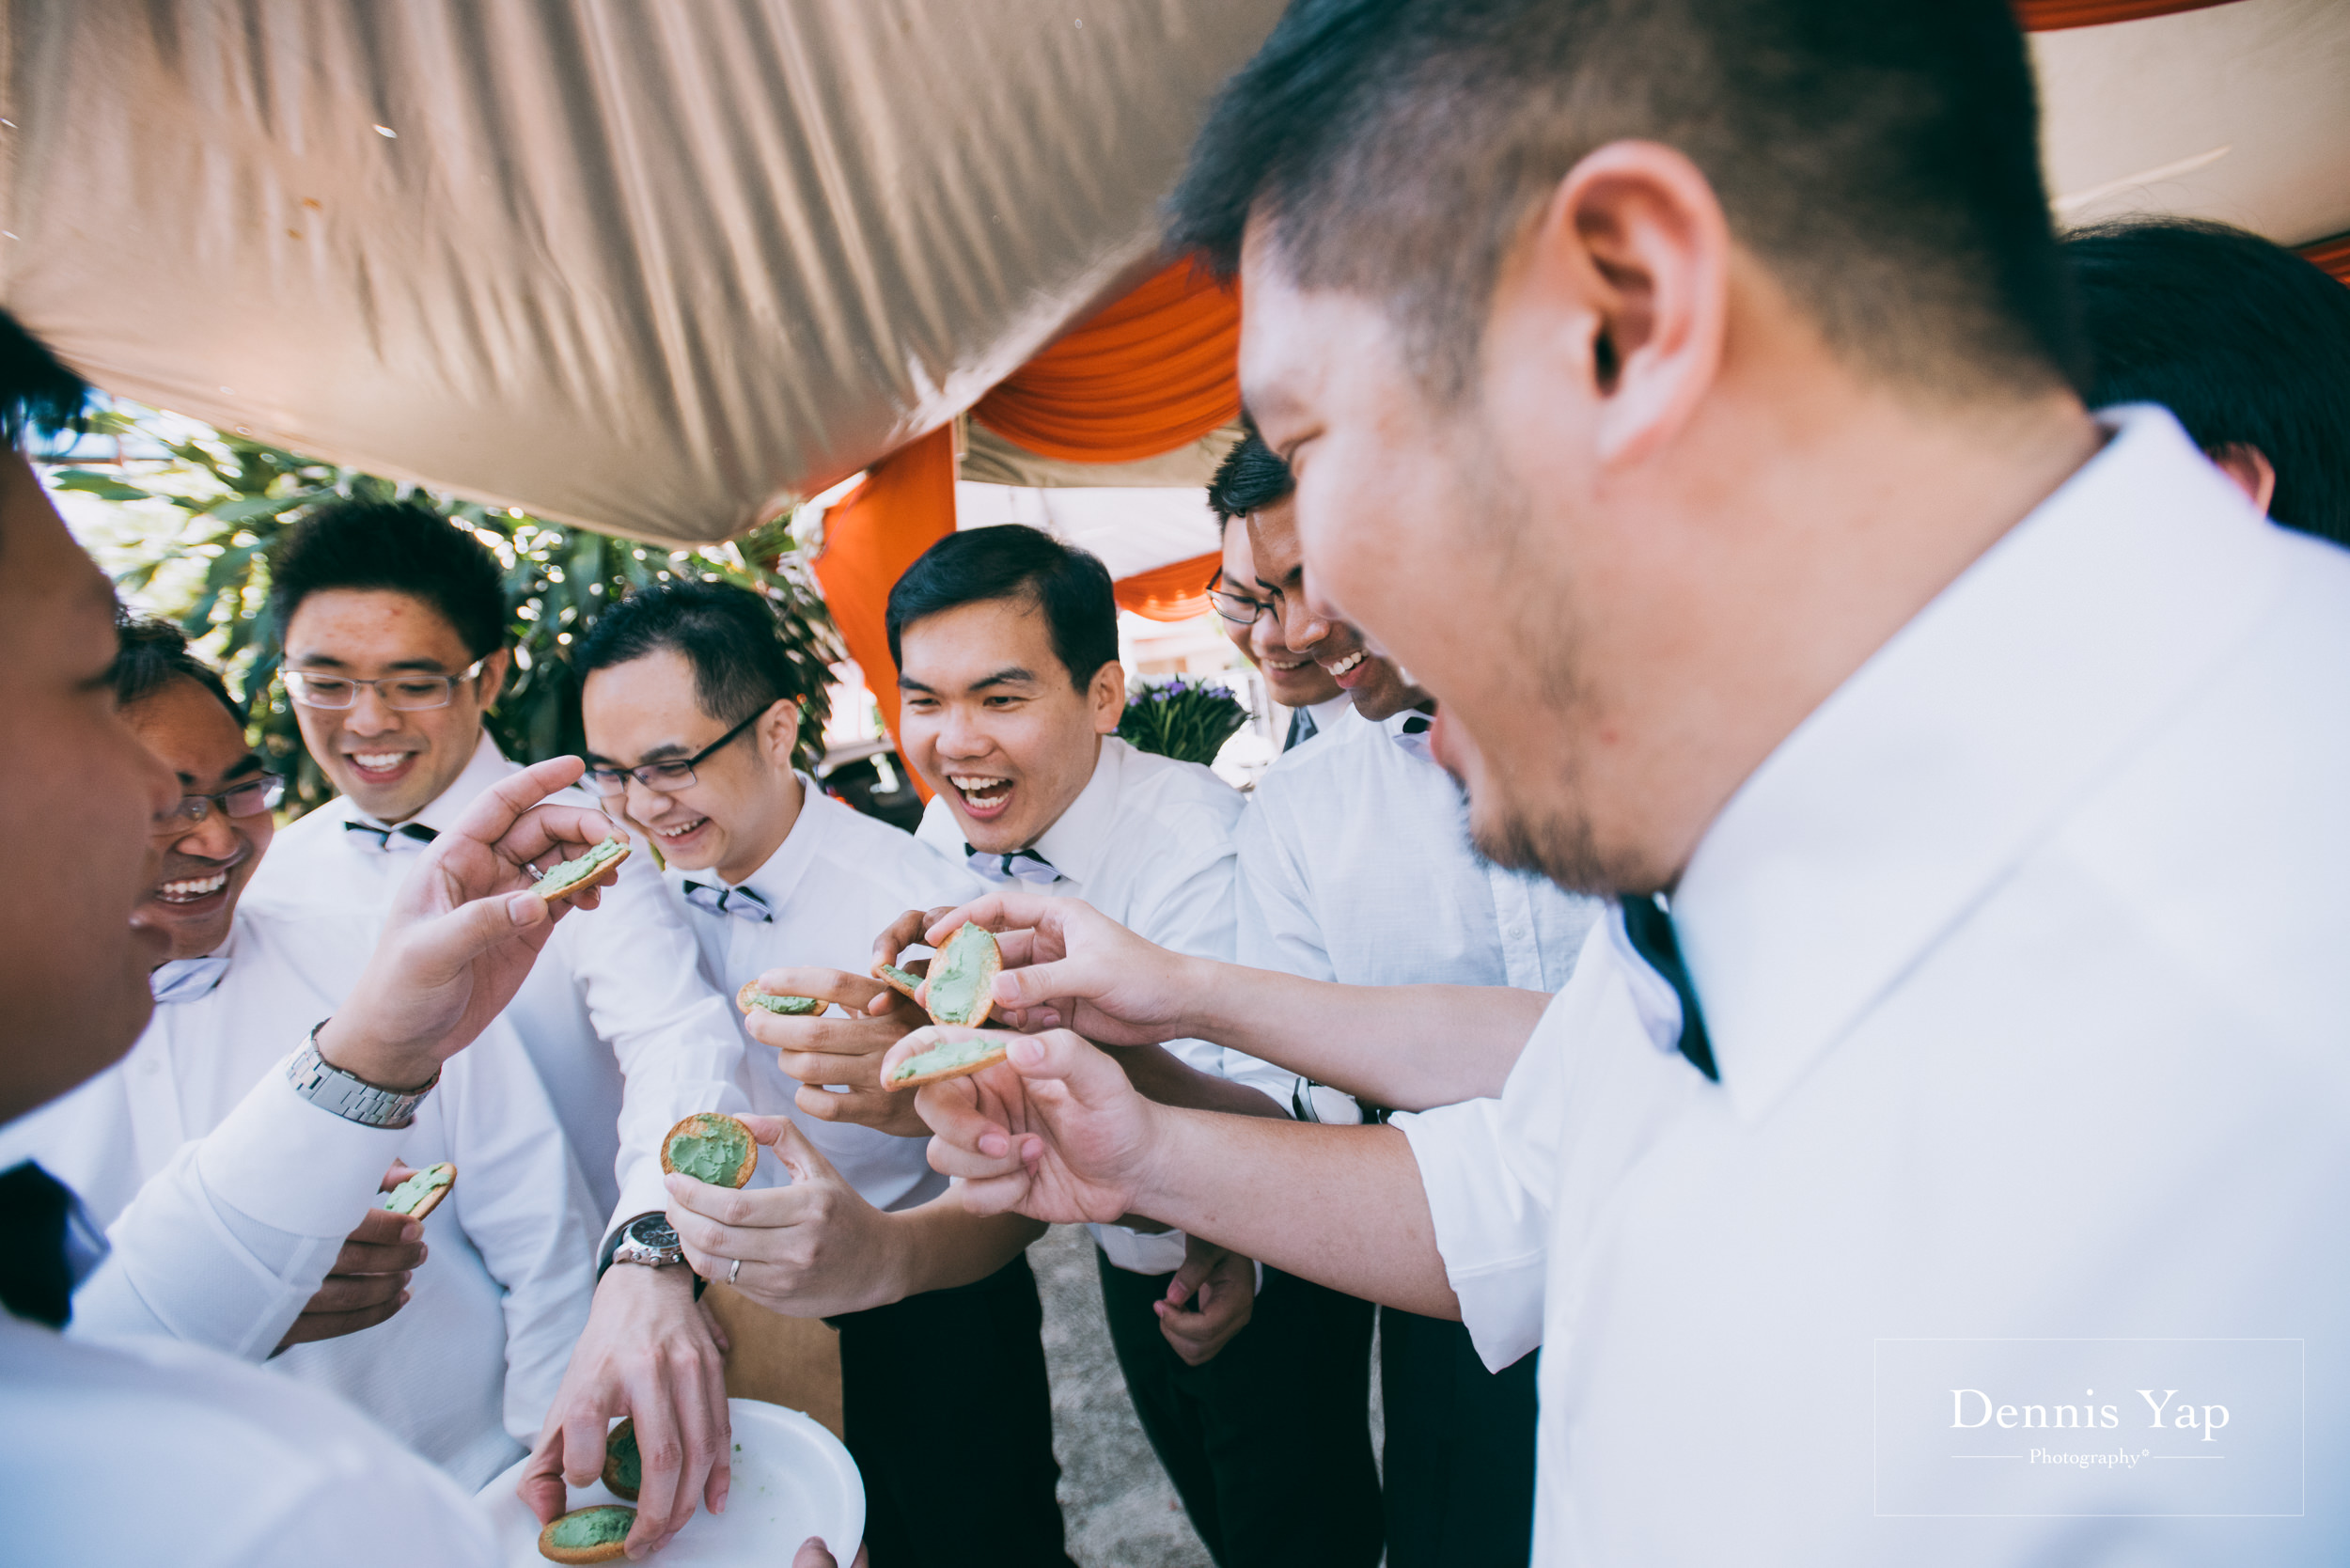 julian paige wedding gate crash malaysia dennis yap-5.jpg